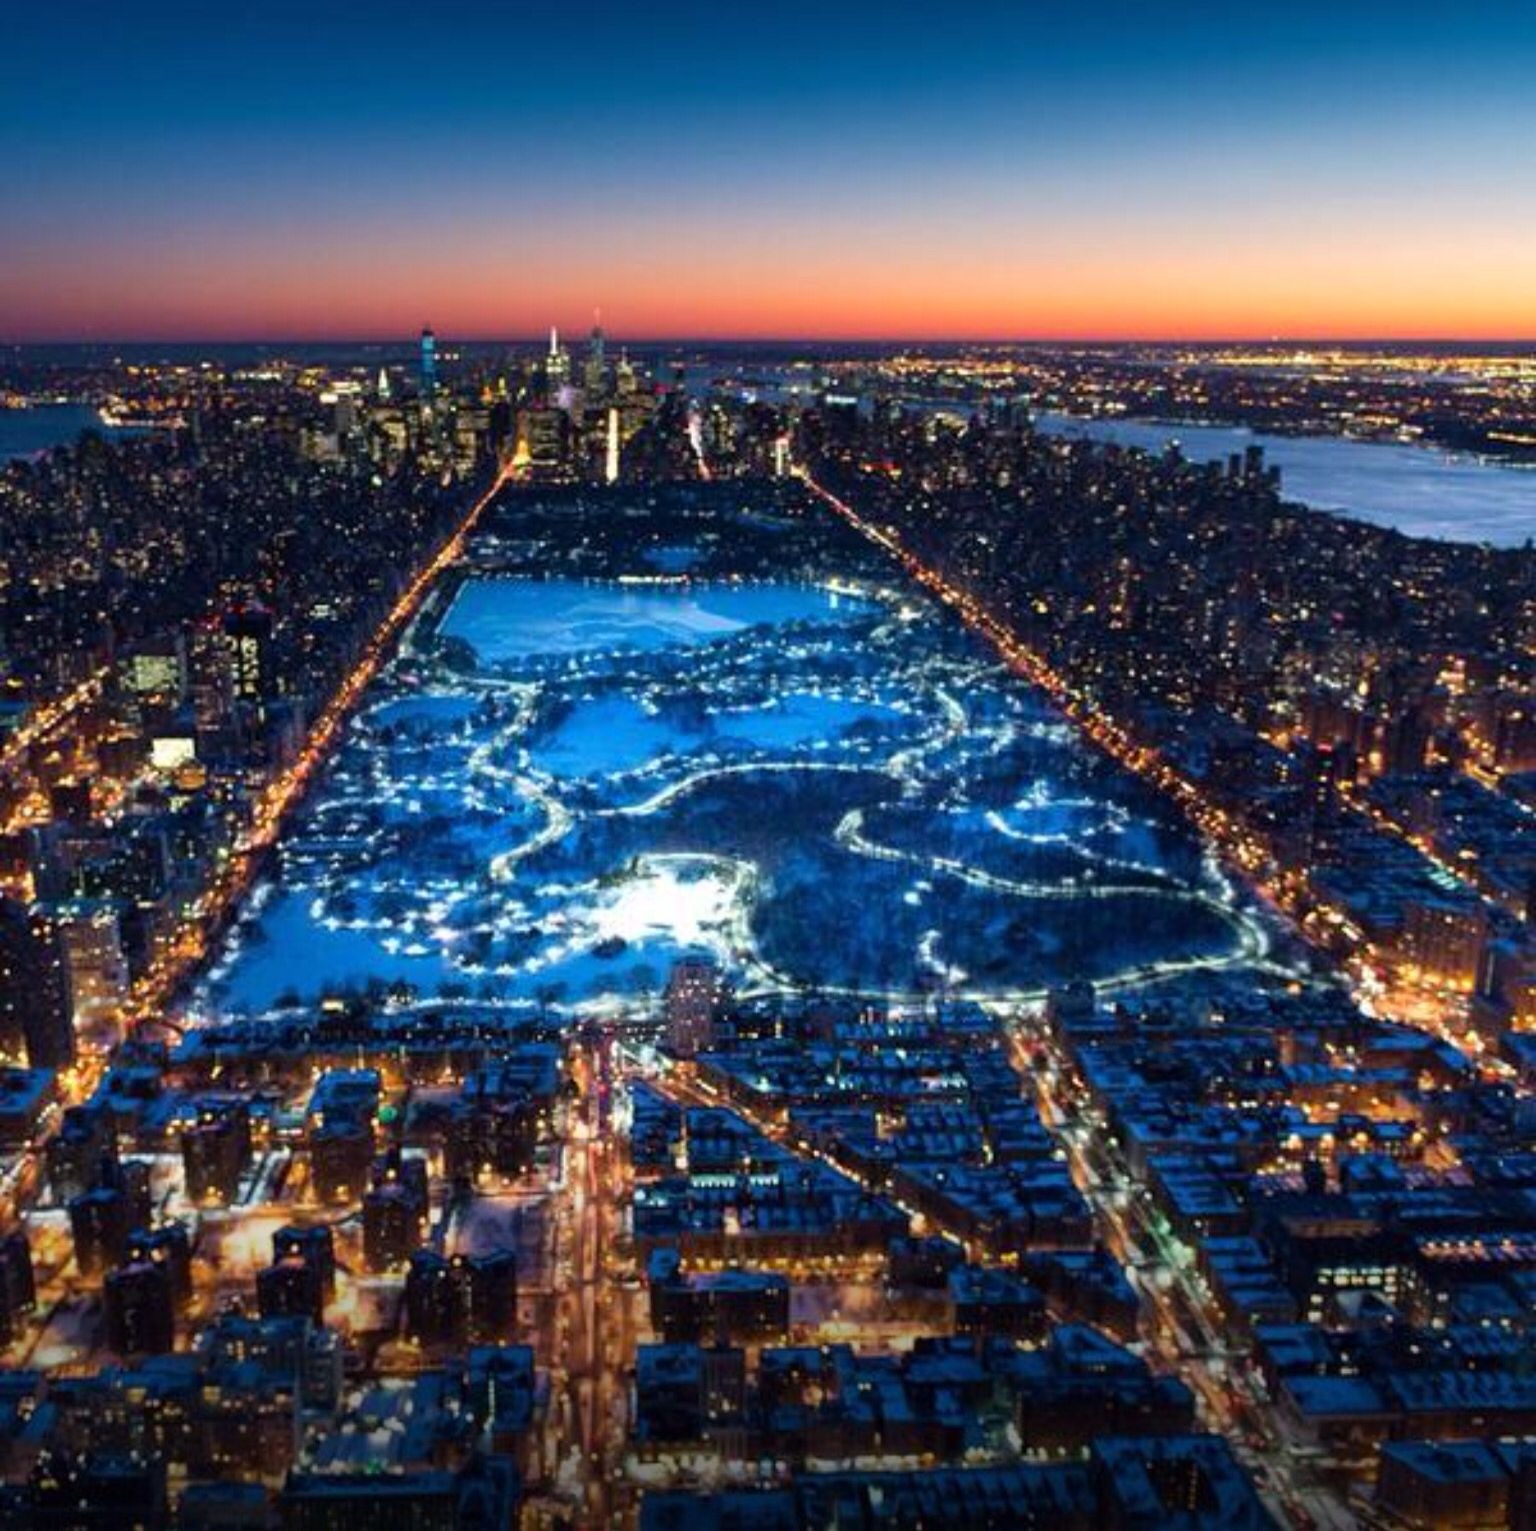 """Central Park New York: """"Central Park At Night From Above By @paulganun #nyc """""""